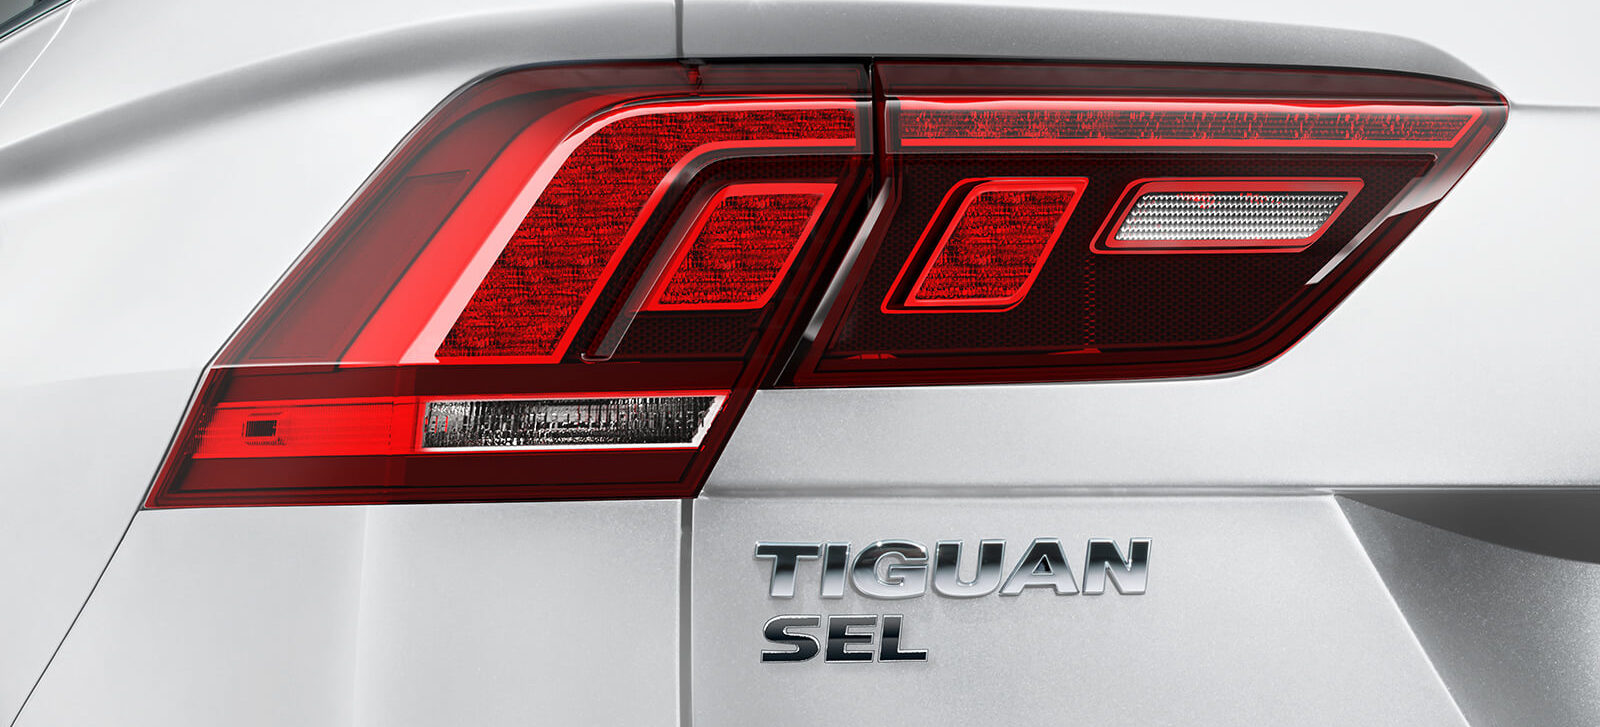 LED Taillights of the 2020 Tiguan